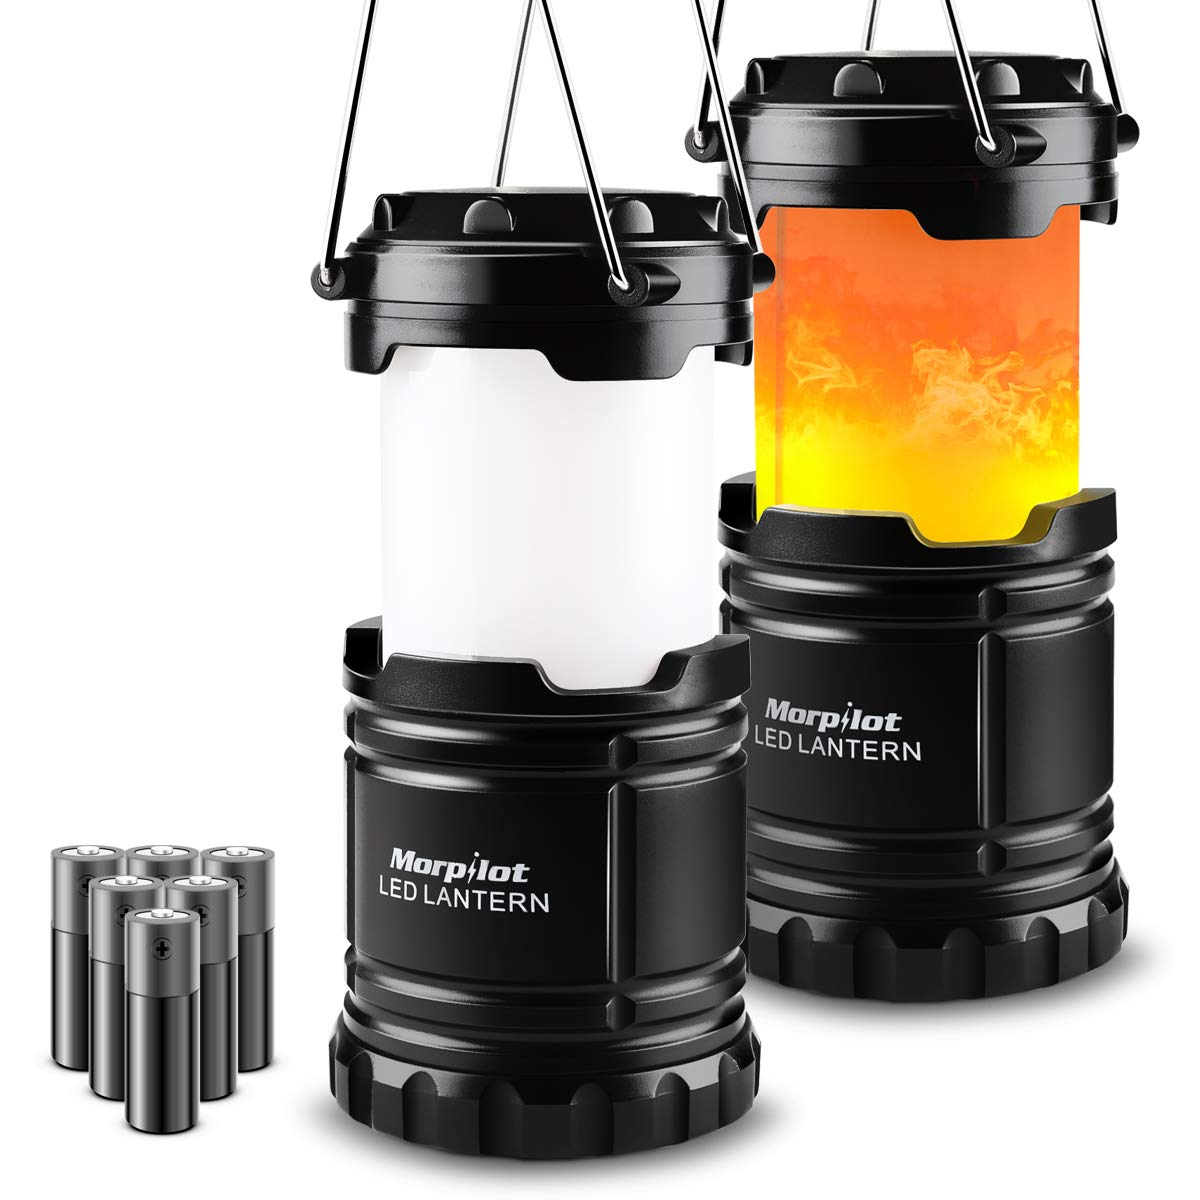 2 Pack Camping Lantern with 2 in 1 Lighting Modes(White Light or Flame Light) 6 AA Batteries Included, Portable Ultra-Bright LED Lantern Flashlight for Emergency, Hurricane, Outage, Camping, Hiking